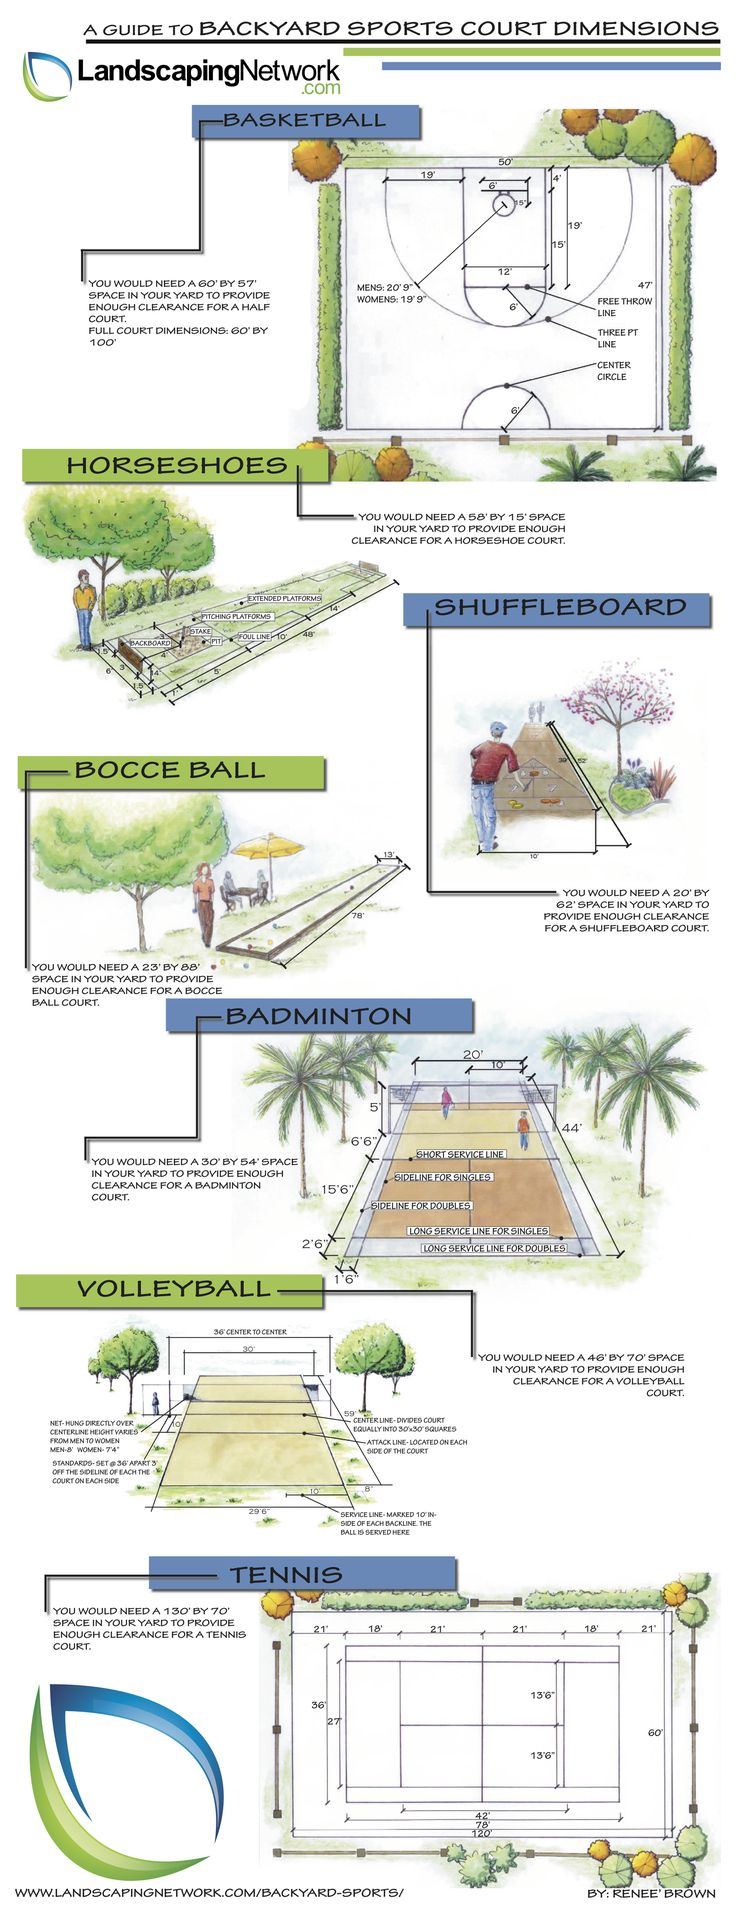 A Guide to Backyard Sports Court Dimensions - http://www.coolinfoimages.com/infographics/a-guide-to-backyard-sports-court-dimensions/